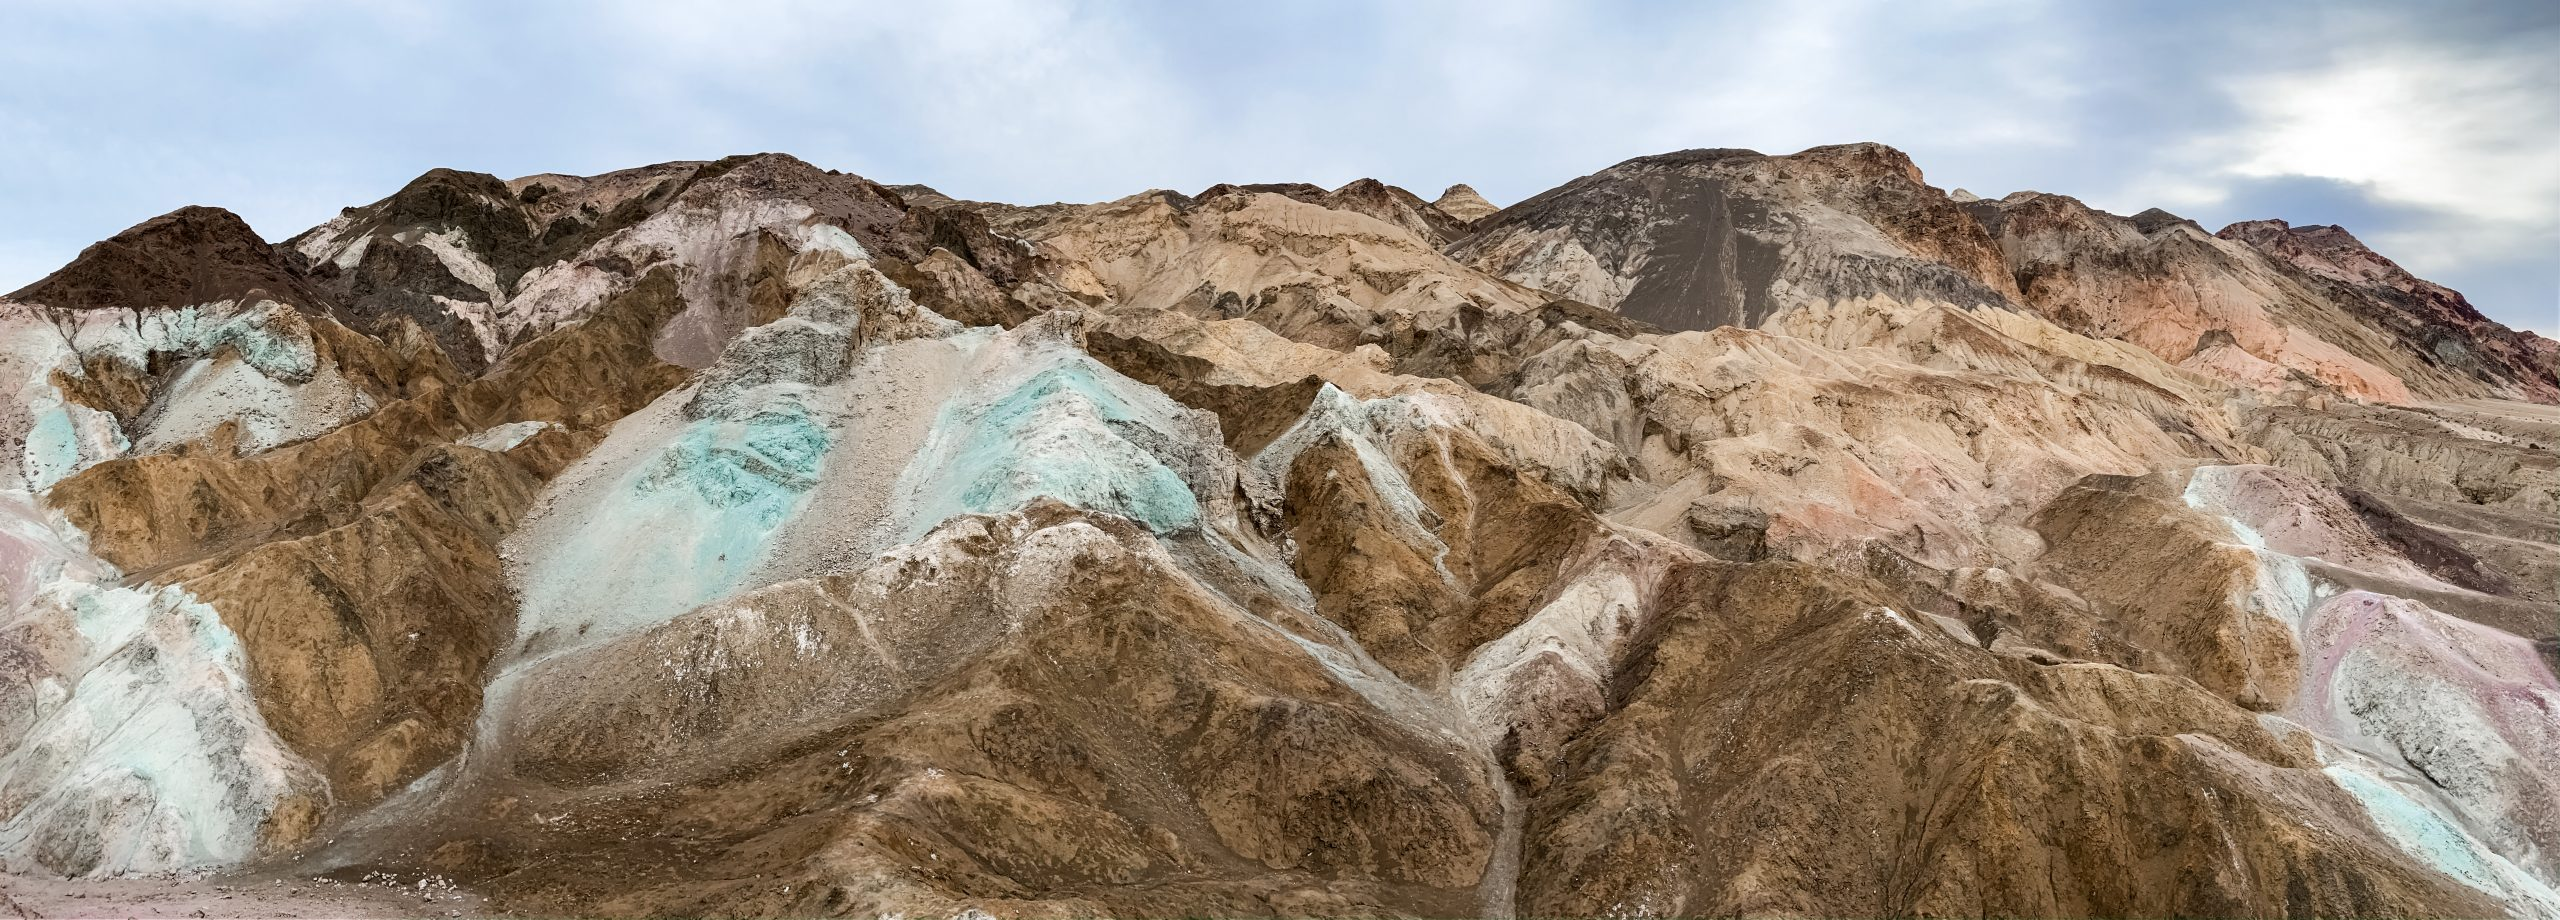 Artist's Palette - Death Valley National Park